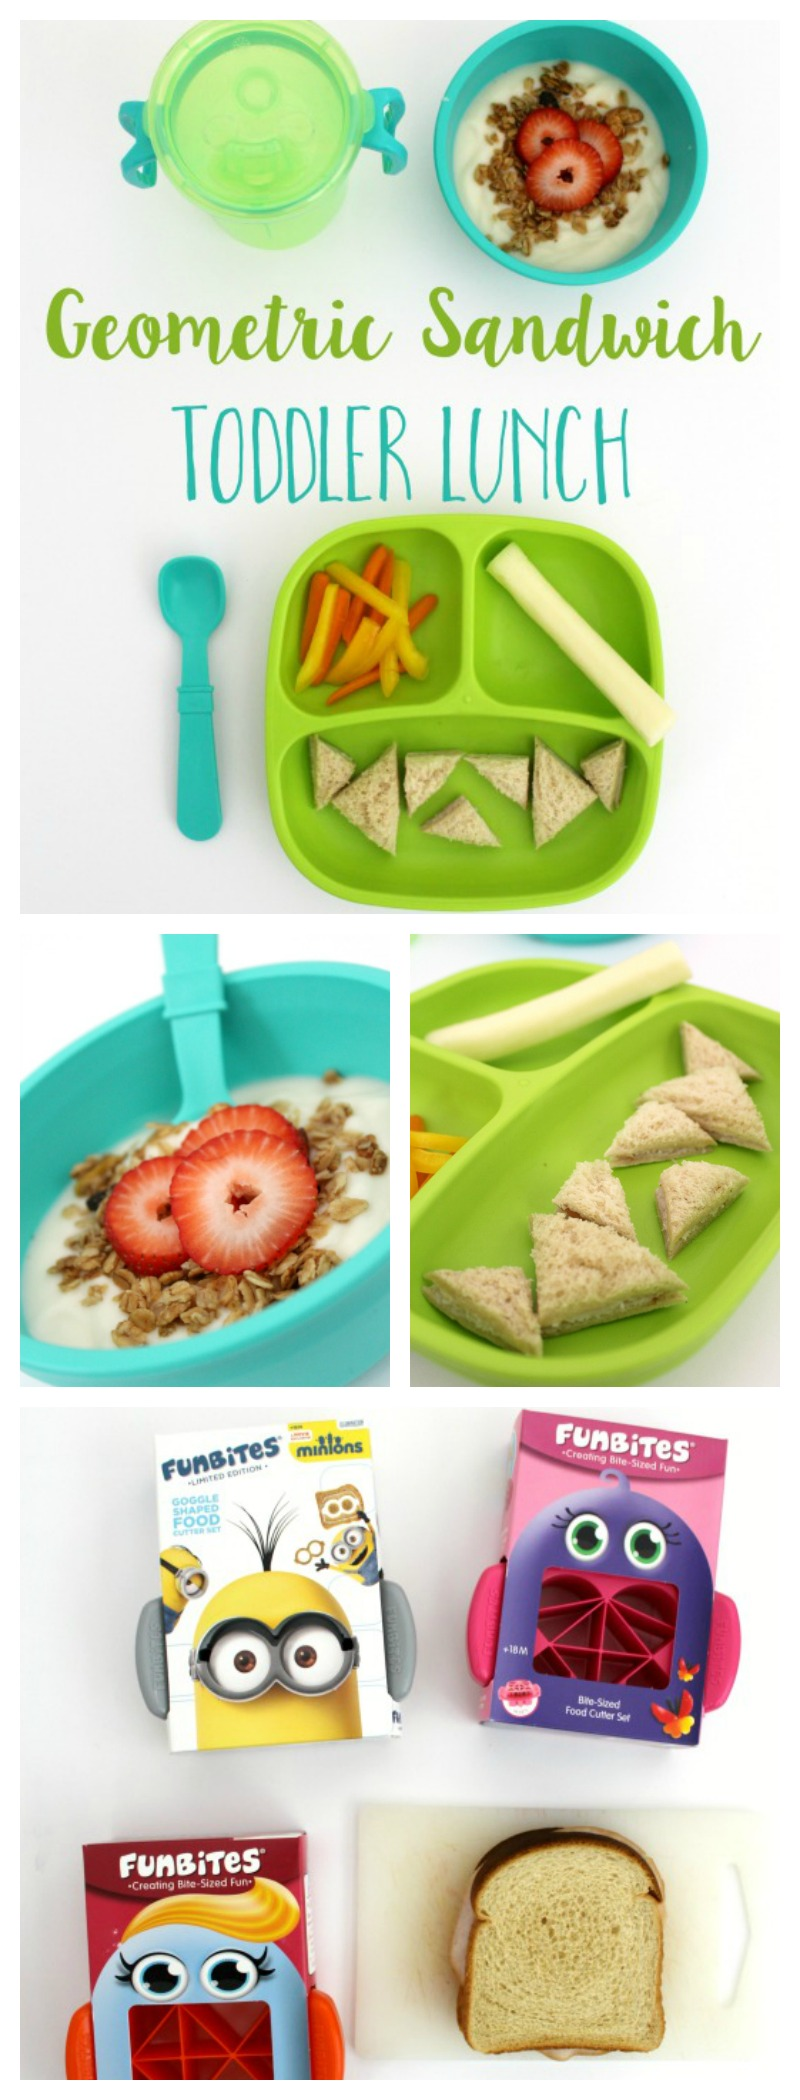 Geometric Sandwiches Toddler Lunch // Life Anchored AD